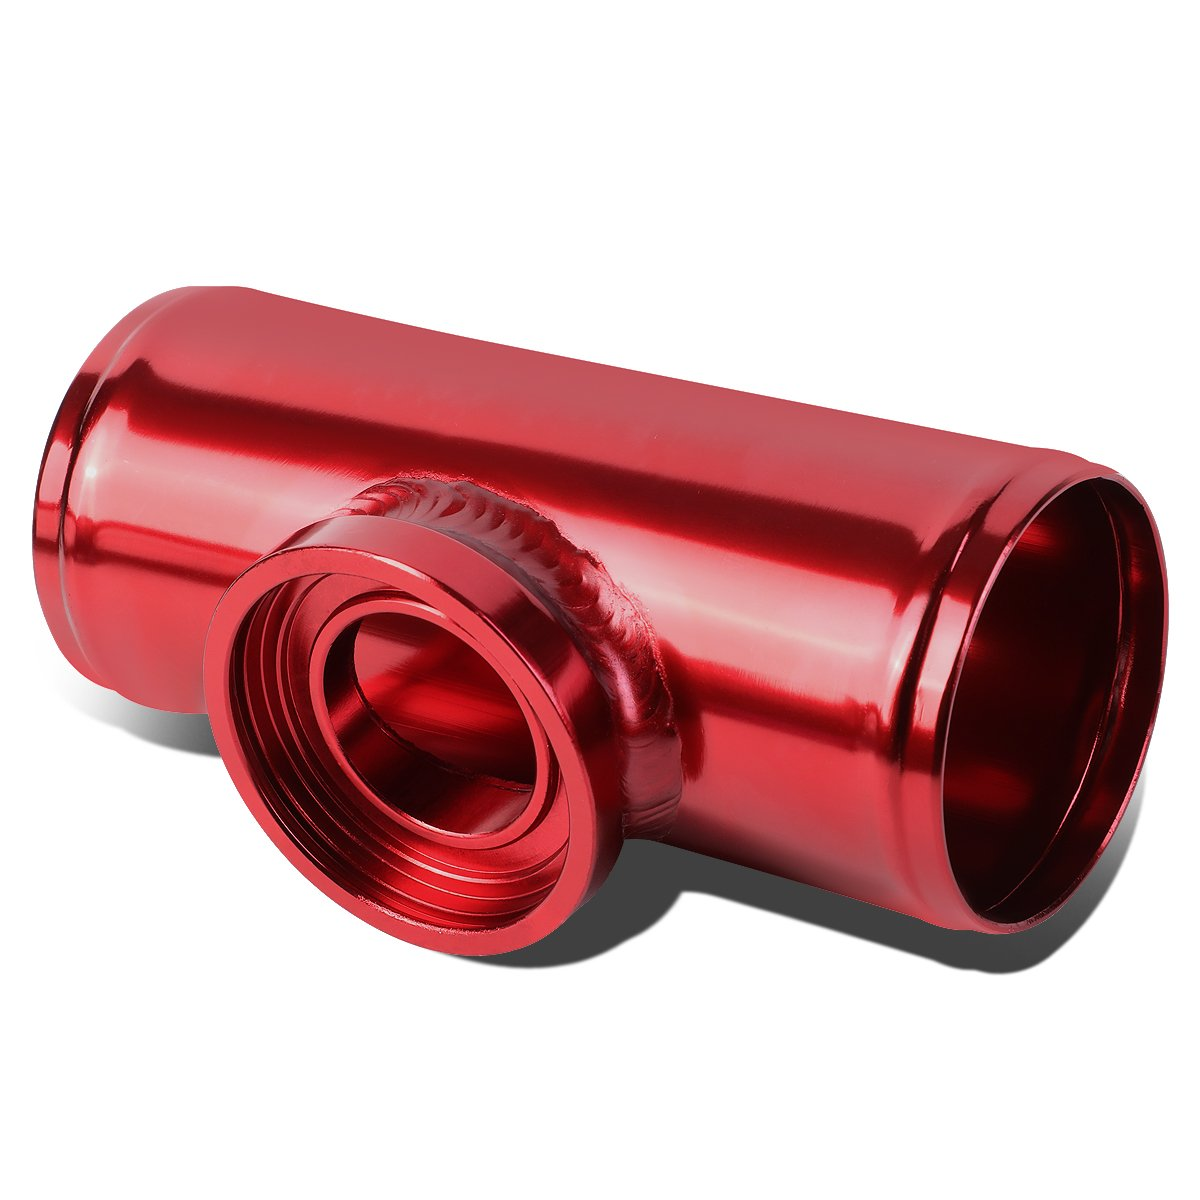 DNA Motoring FP-H250-RD Turbo Blow Off Valve Aluminum Flange Adapter Pipe